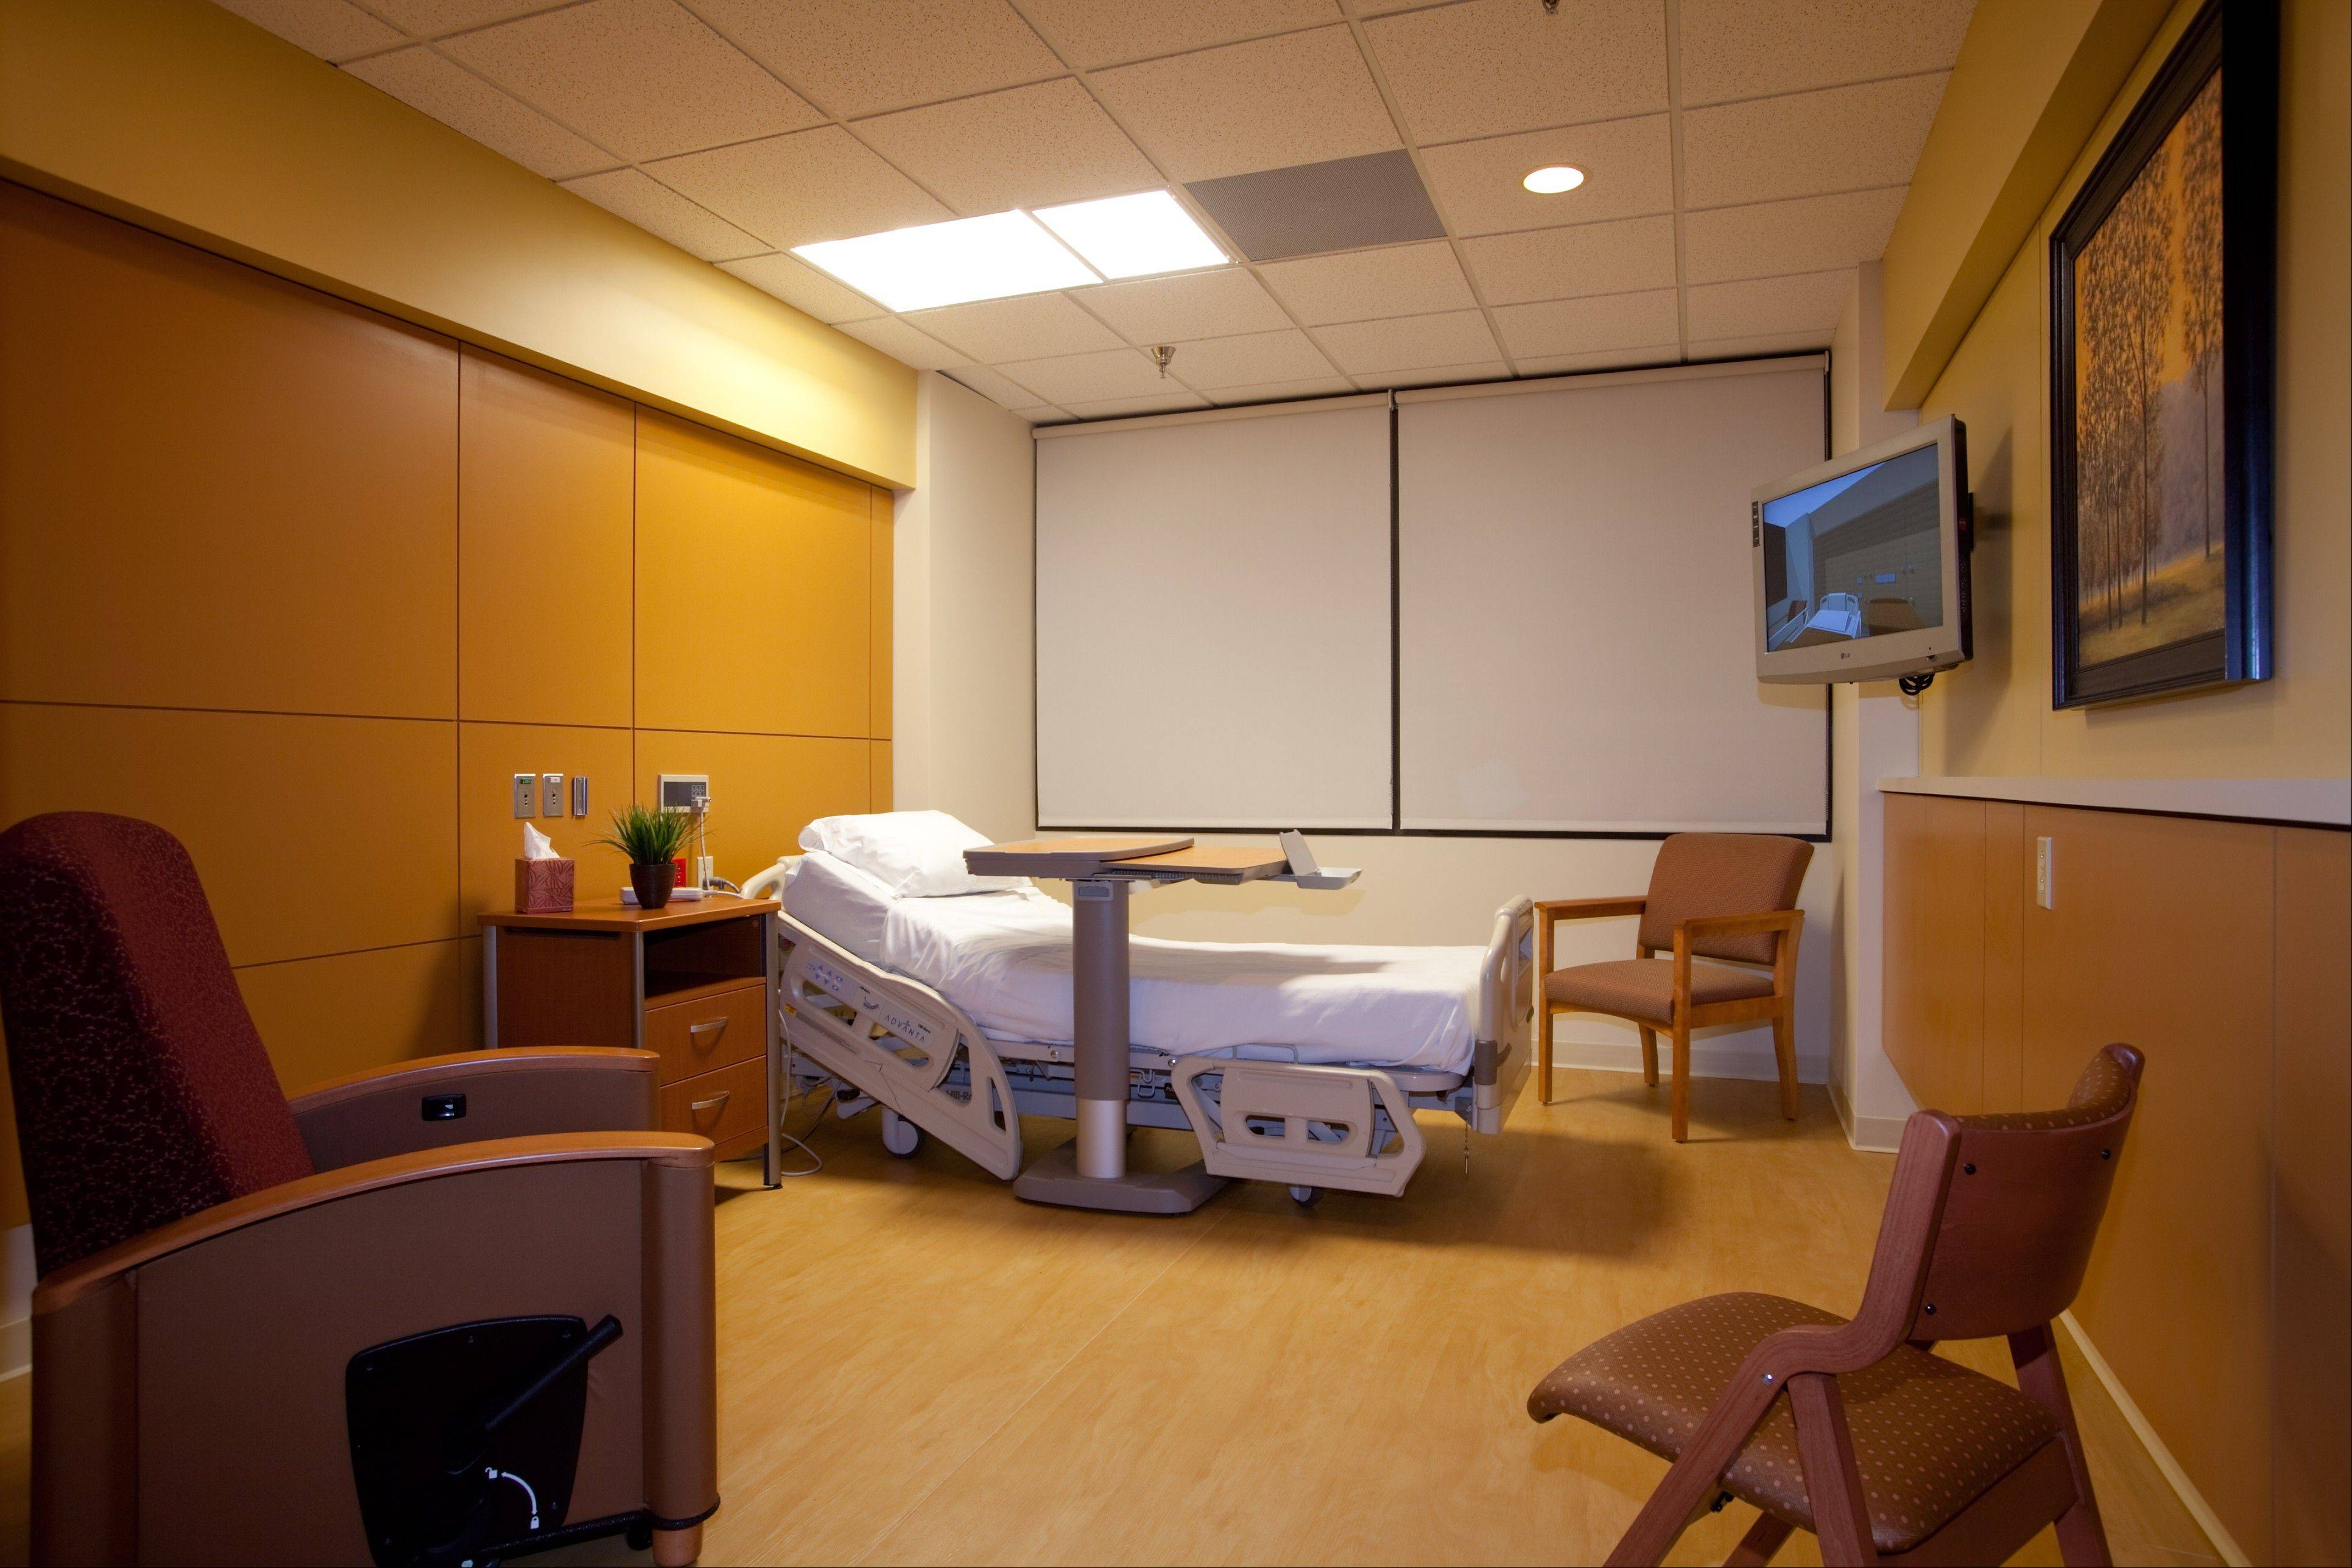 Renovated patient rooms at Provena Mercy Medical Center in Aurora will open for public tours during a picnic from 11 a.m. to 2 p.m. Saturday after an $11 million renovation project to upgrade 90 rooms and convert them from double to single occupancy.